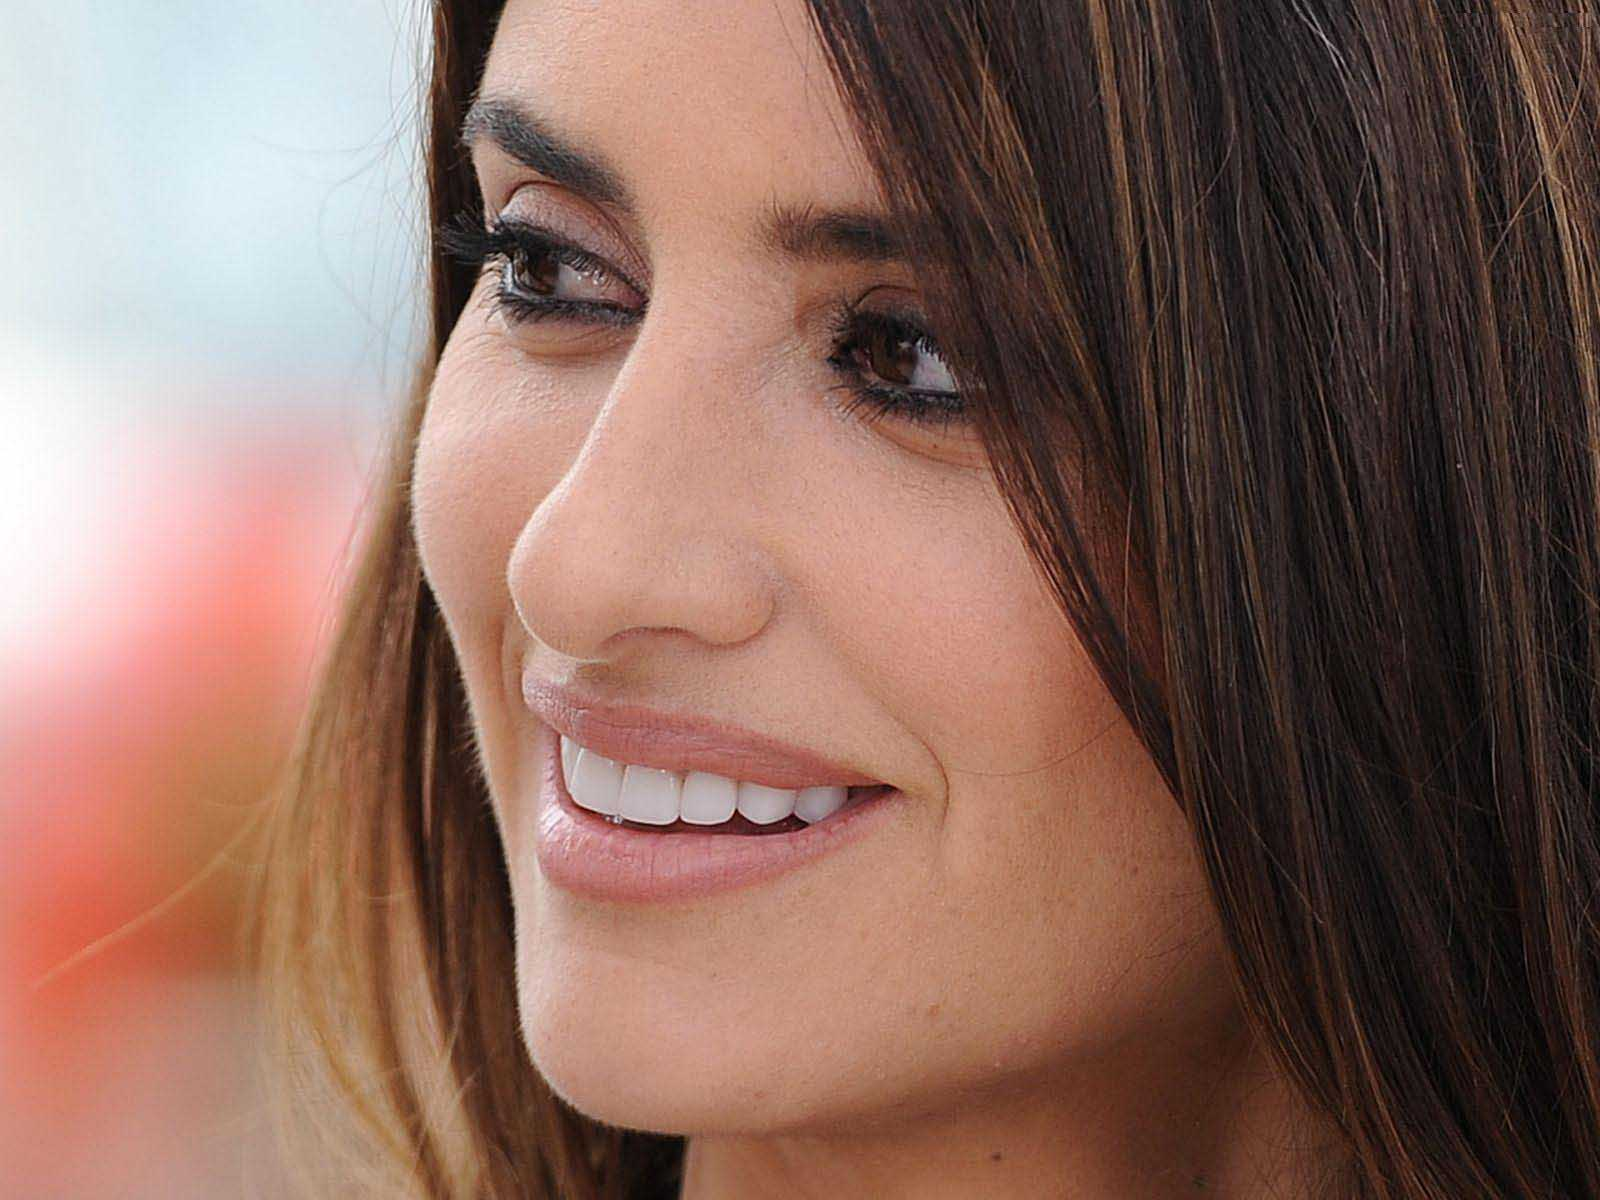 penelope cruz smiling hd wallpaper